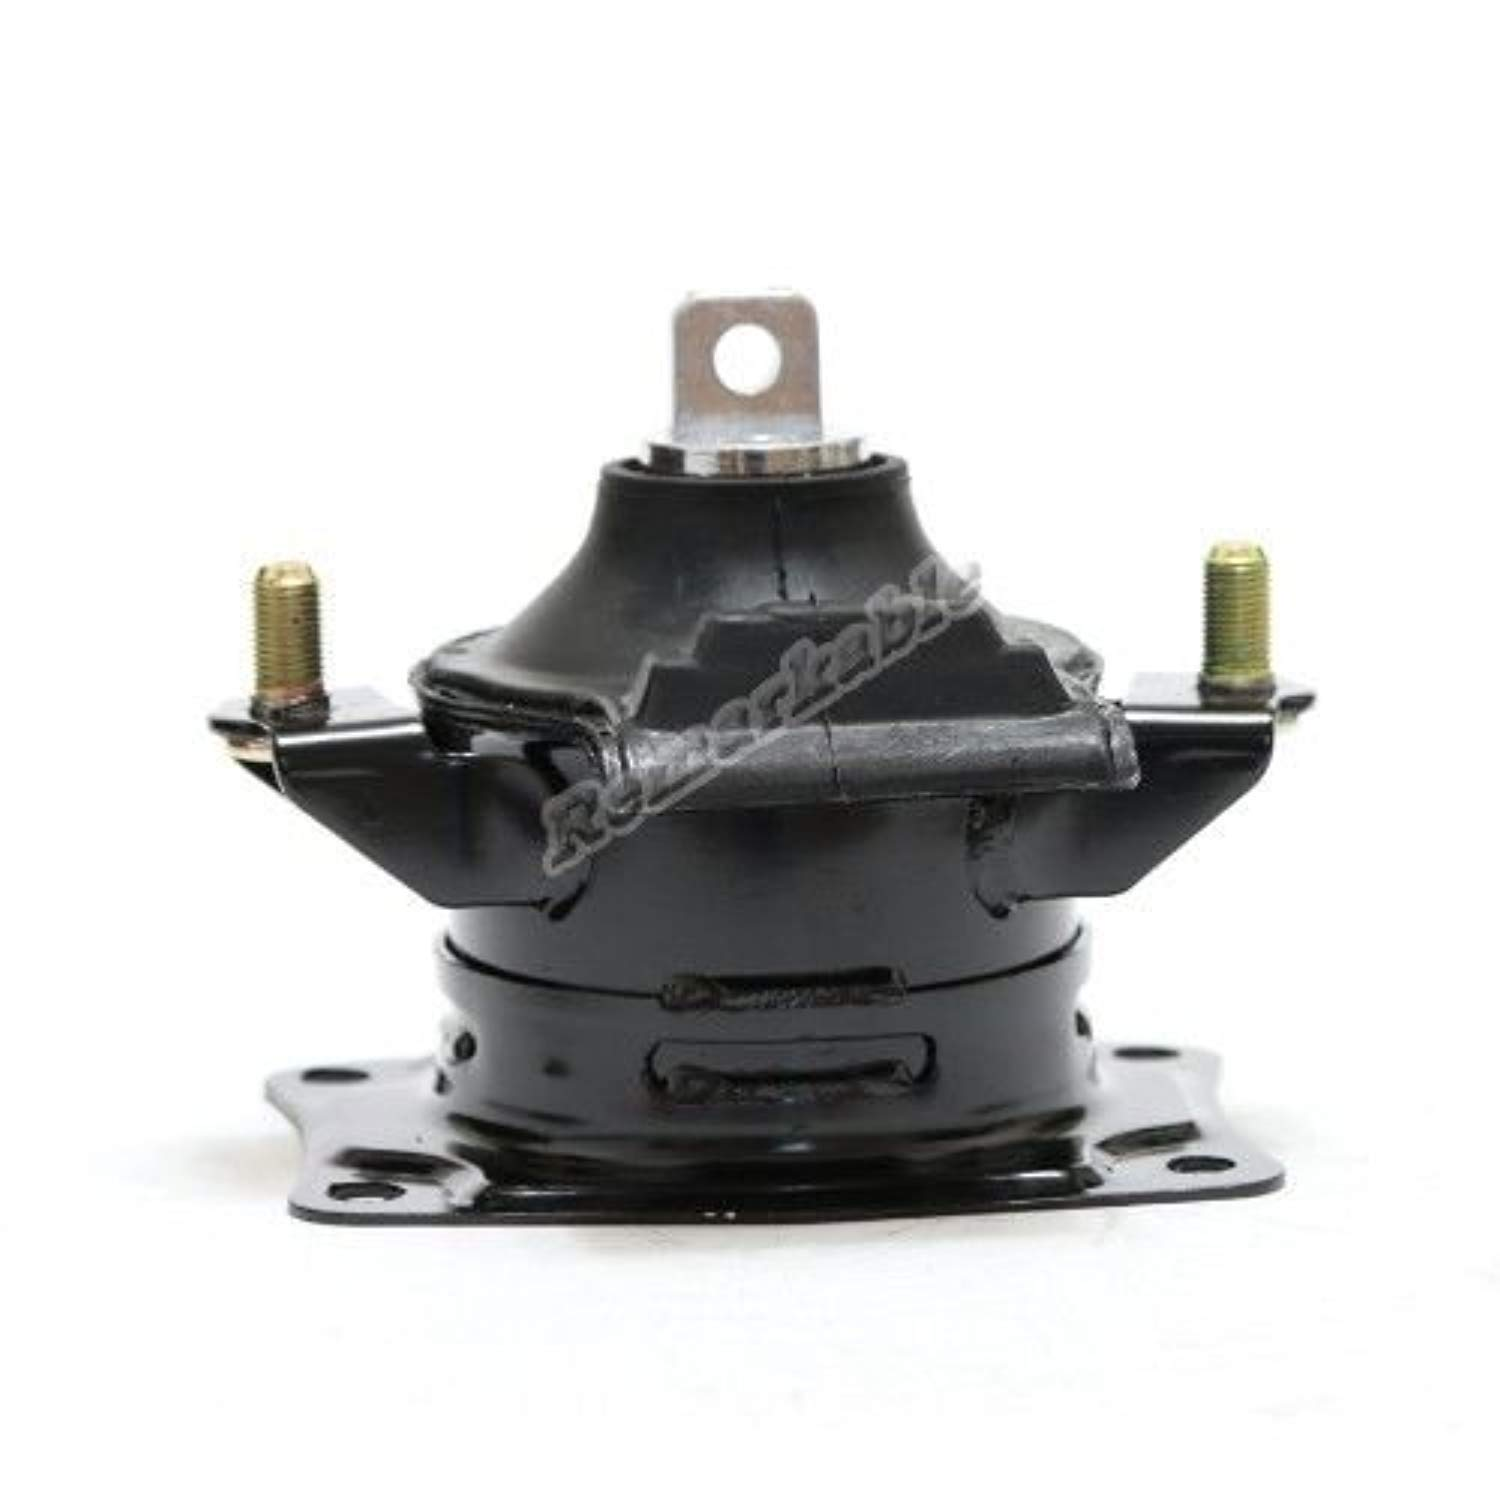 Remarkable Power G062 Transmission Engine Motor Mount Kit 6PCS Fit For 2003-07 Honda Accord 2.4L NEW